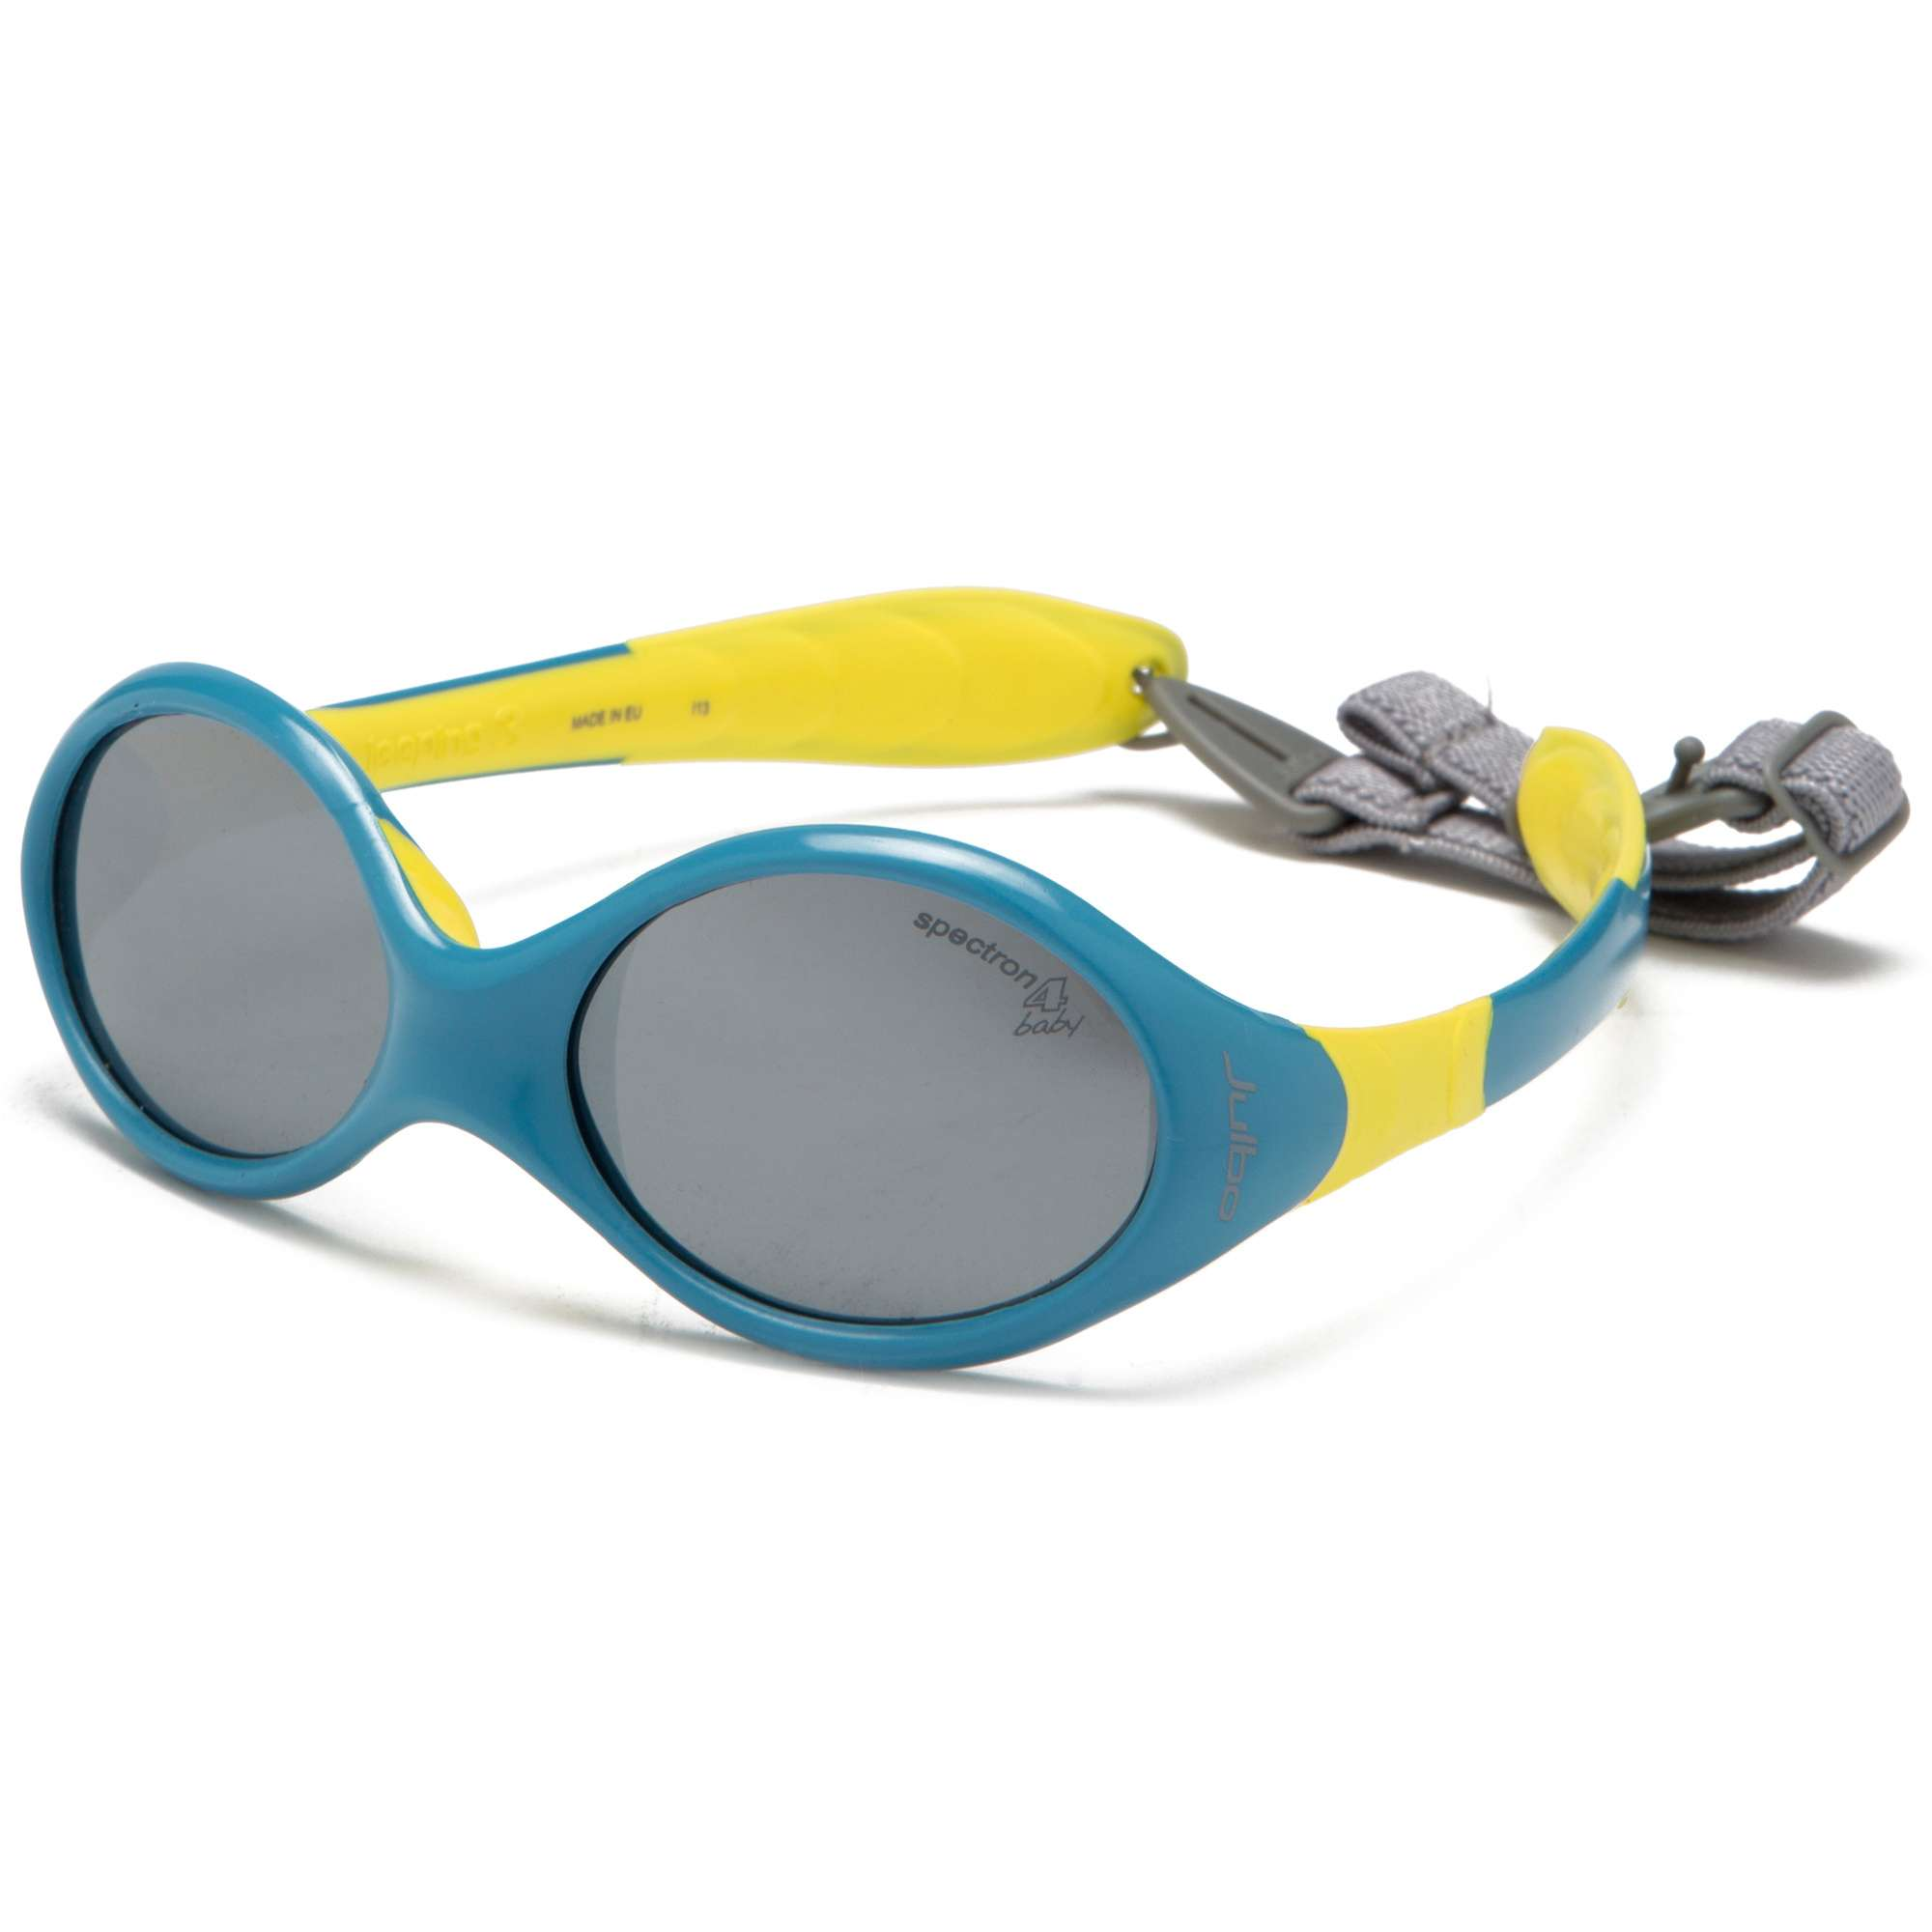 JULBO Kid's Looping 3 Sunglasses (ages 2-4 years)